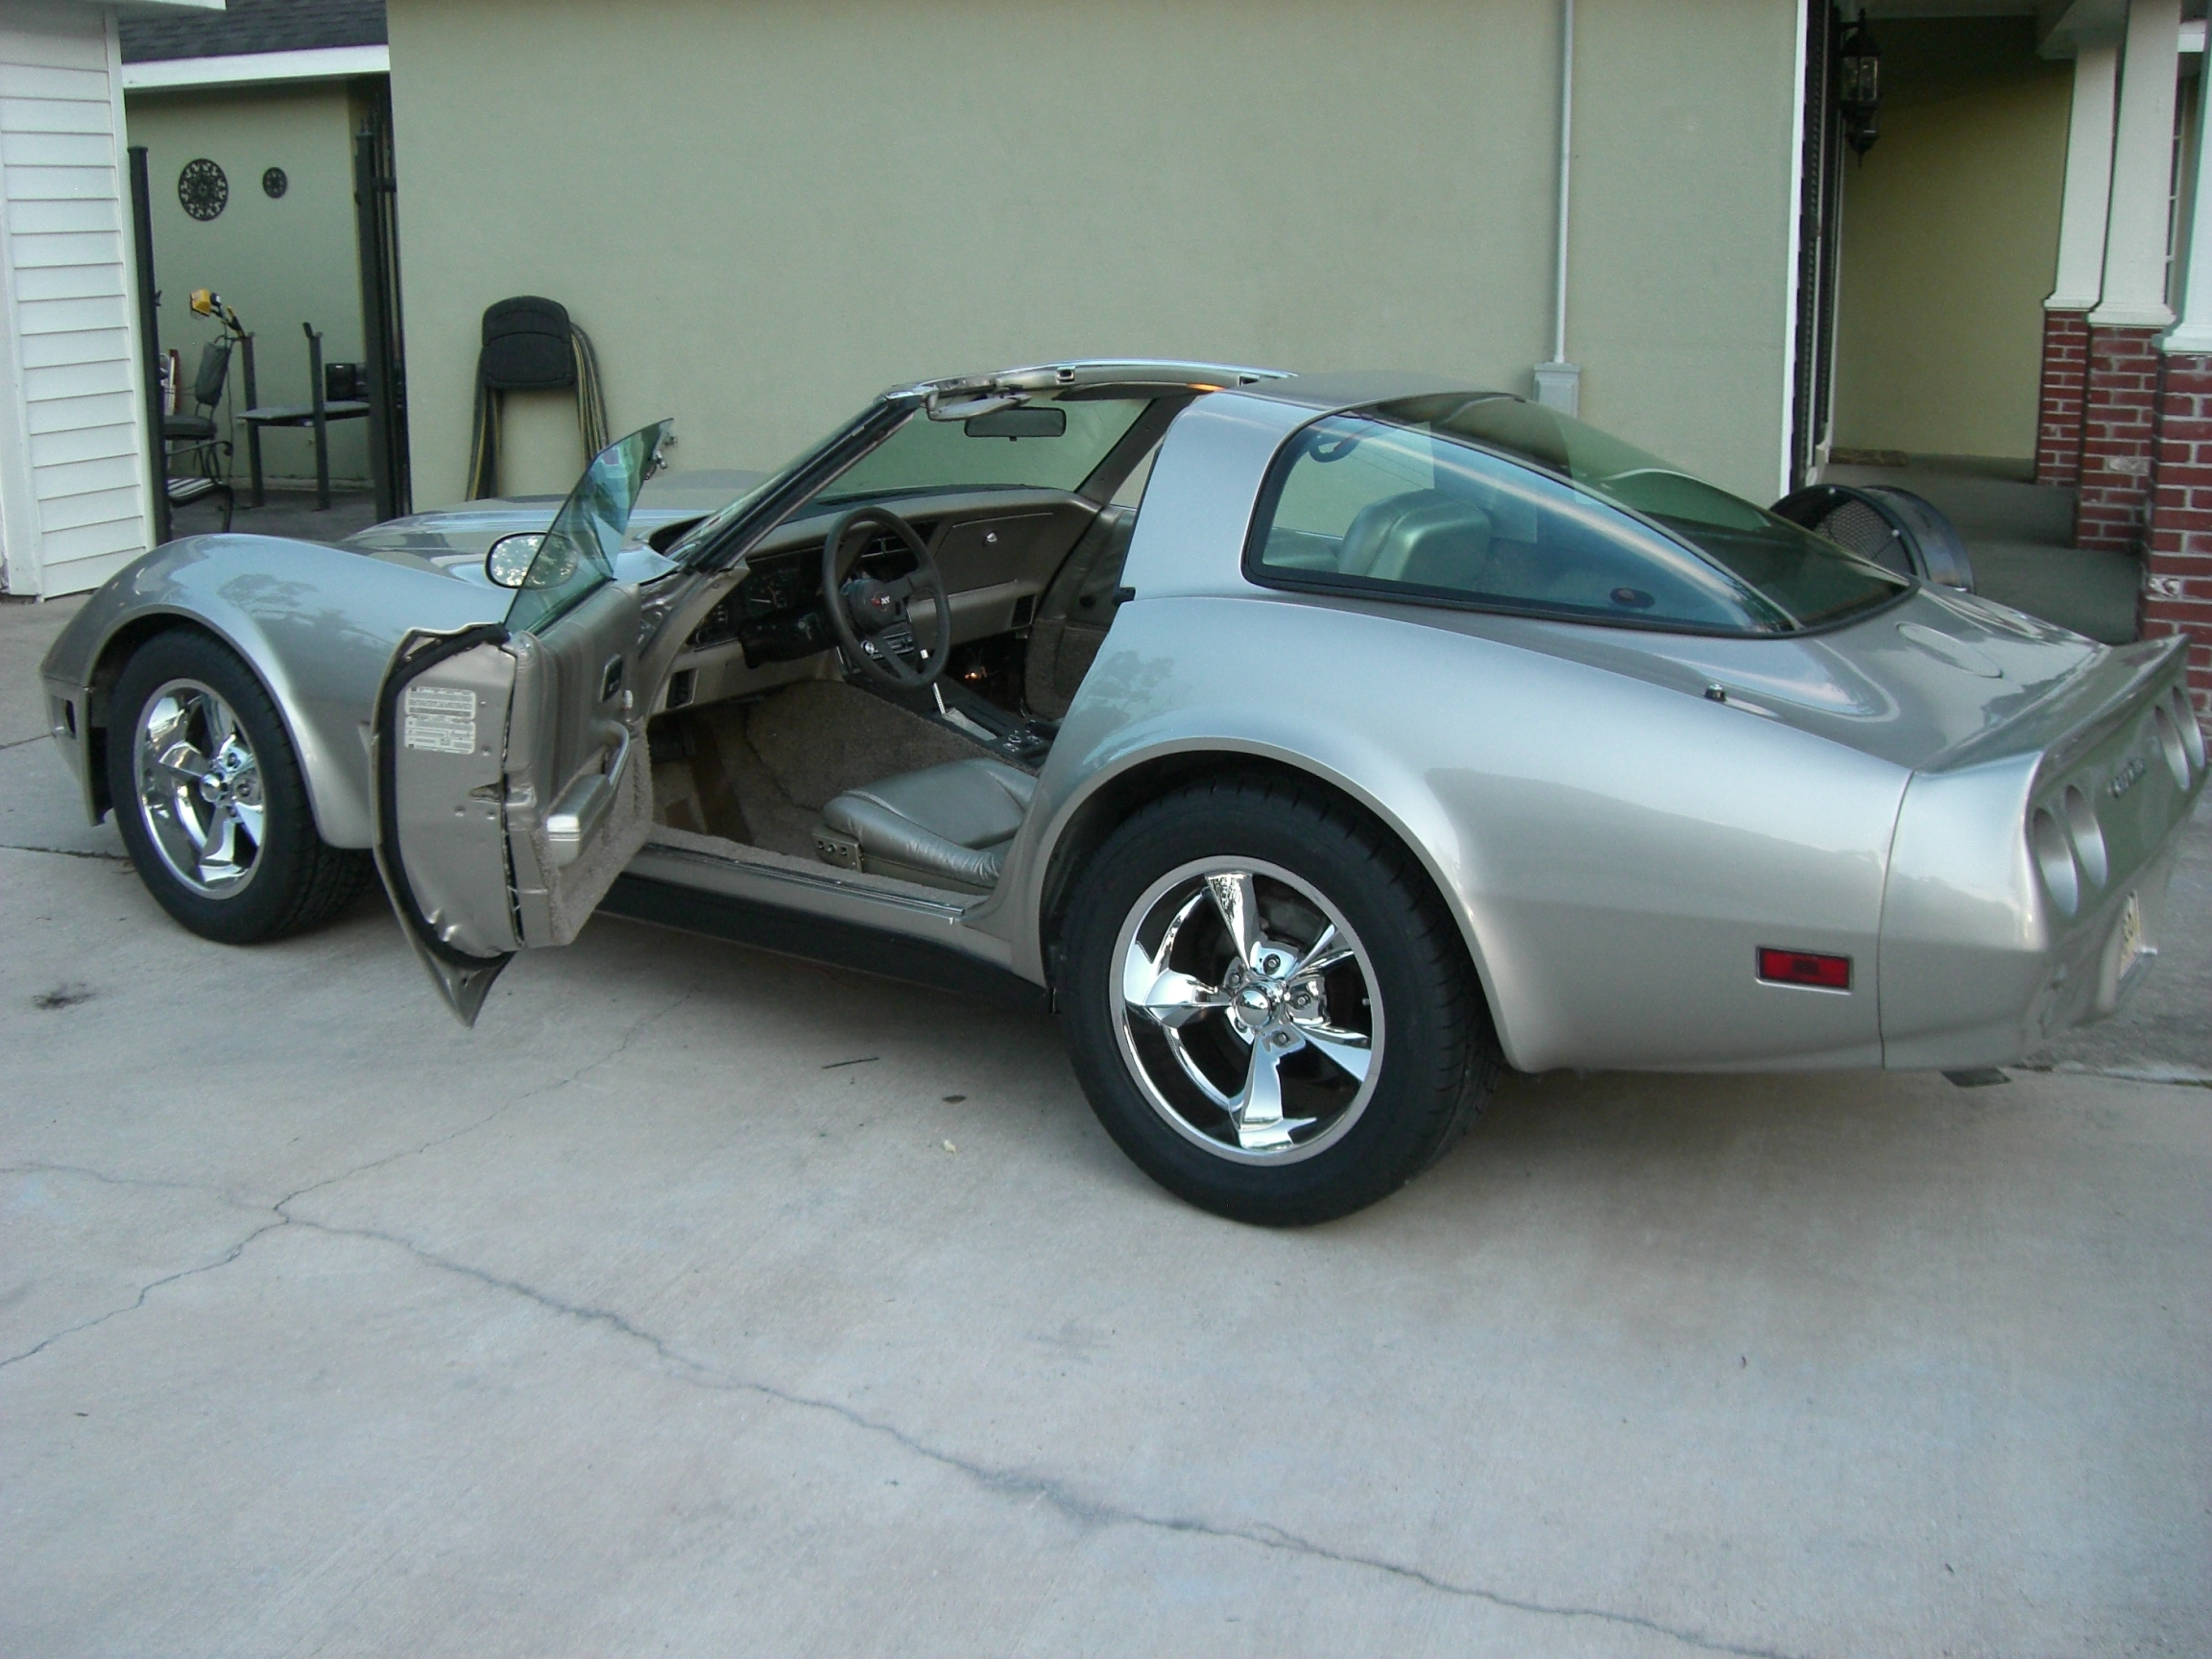 Da_Collector 1982 Chevrolet Corvette Specs, Photos, Modification